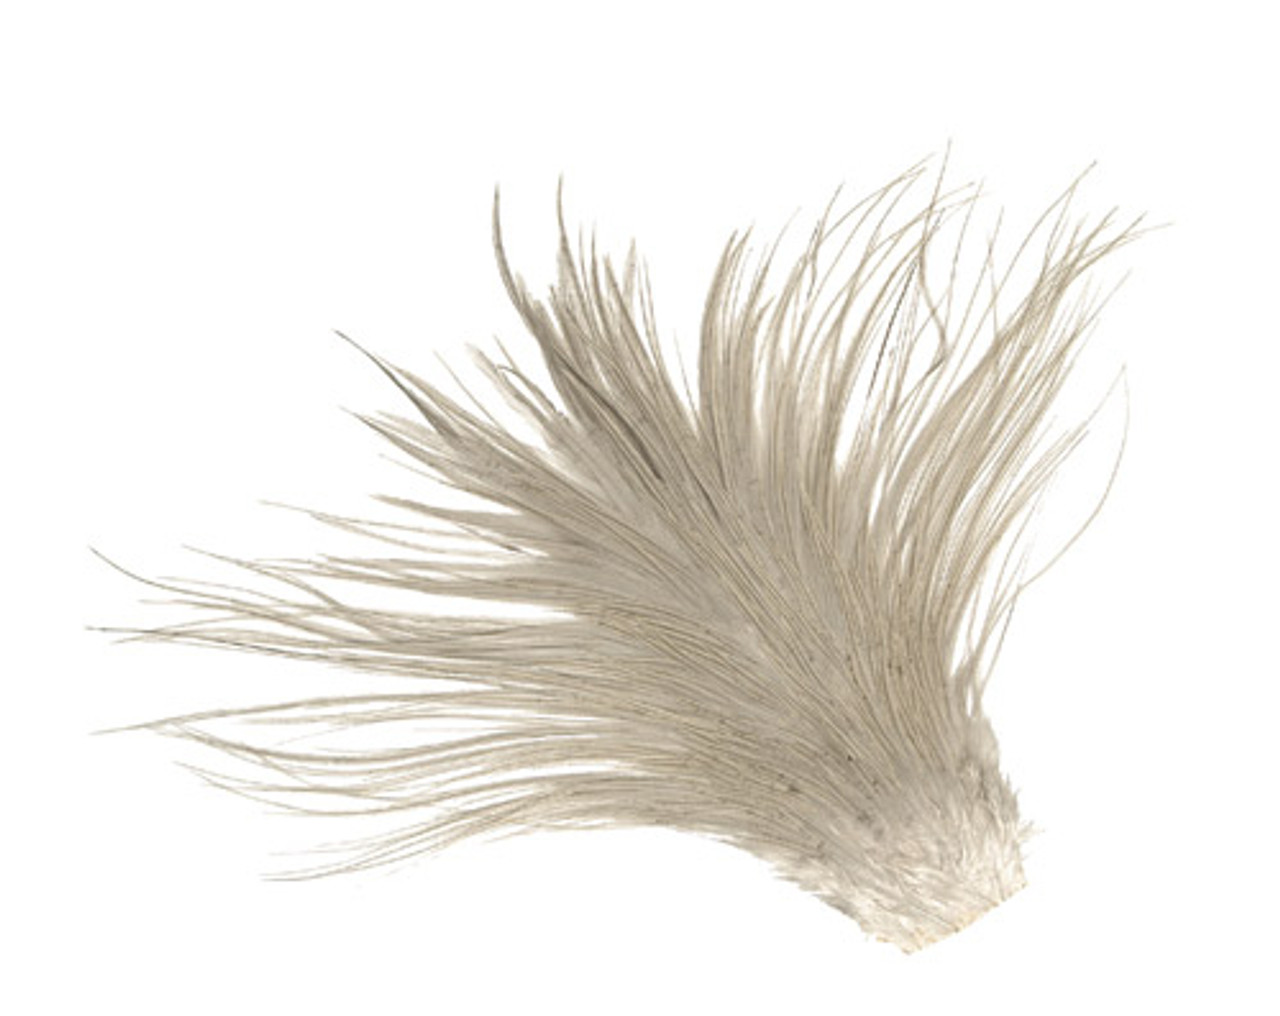 DRY FLY Hackle size 8 to 16 1//4 METZ COMMERCIAL Saddle CREAM//WHITE